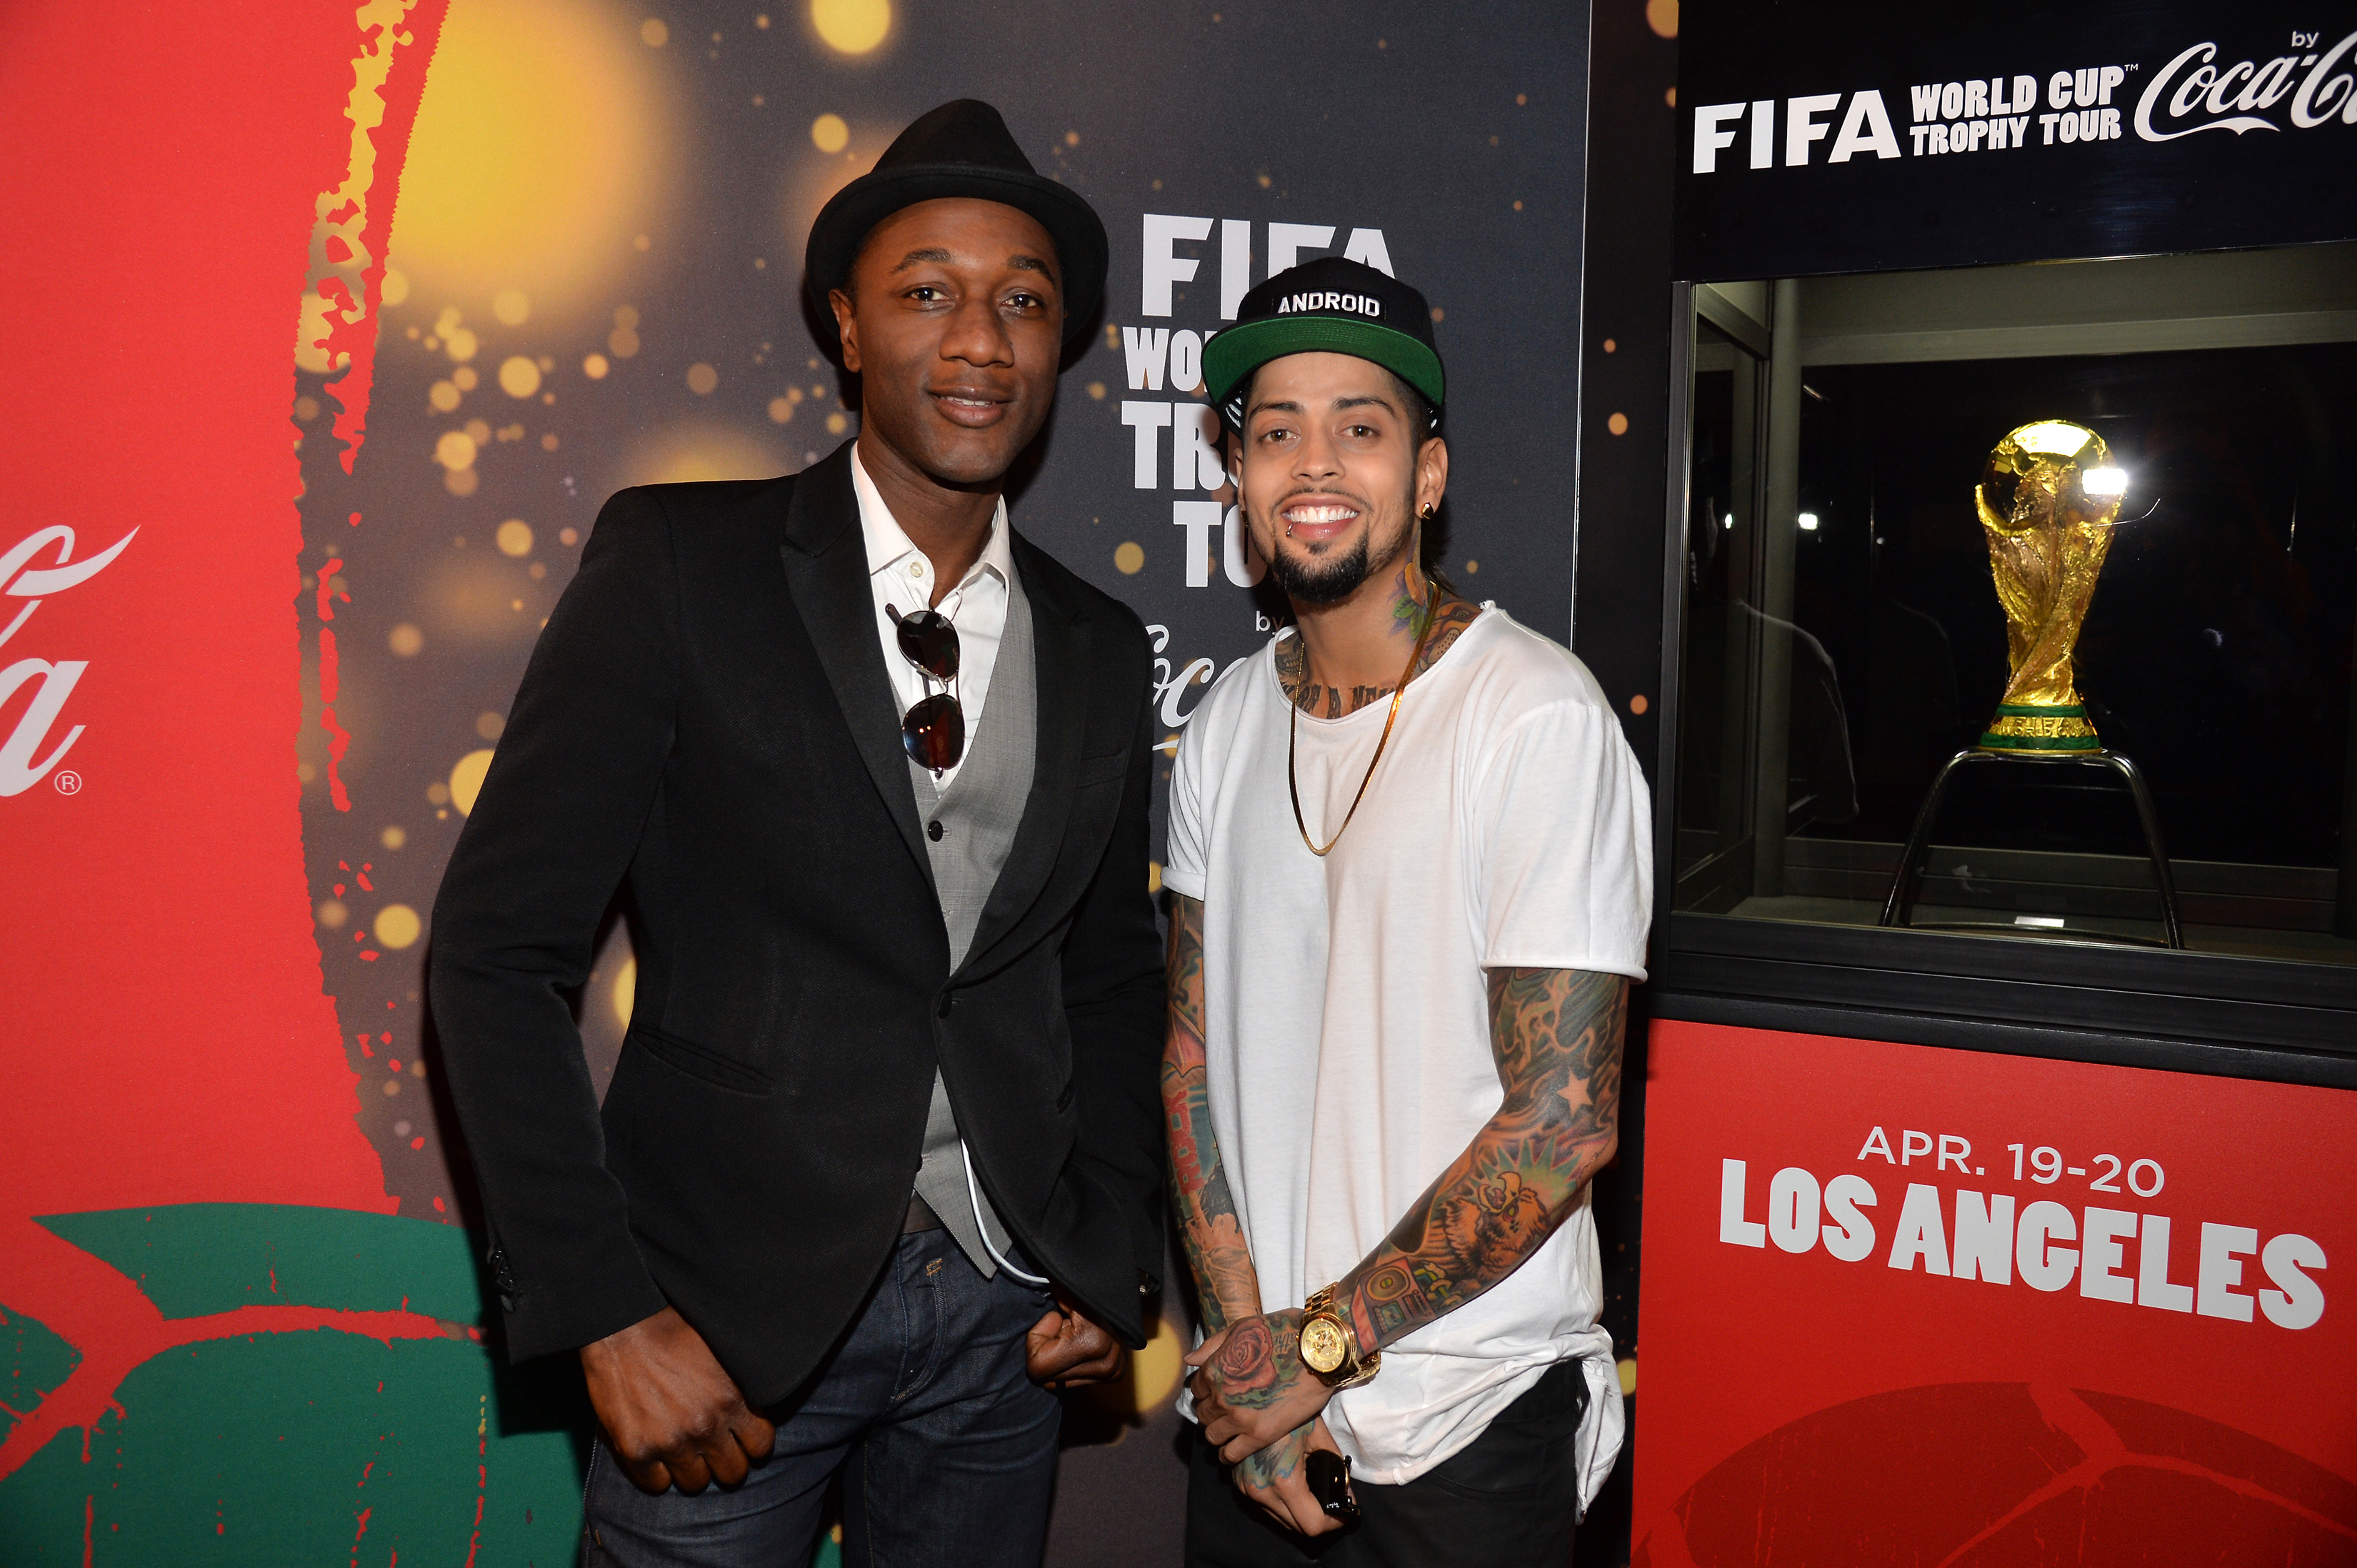 Aloe Blacc, David Correy And Wisin Perform At The FIFA World Cup Trophy Tour By Coca-Cola In Los Angeles